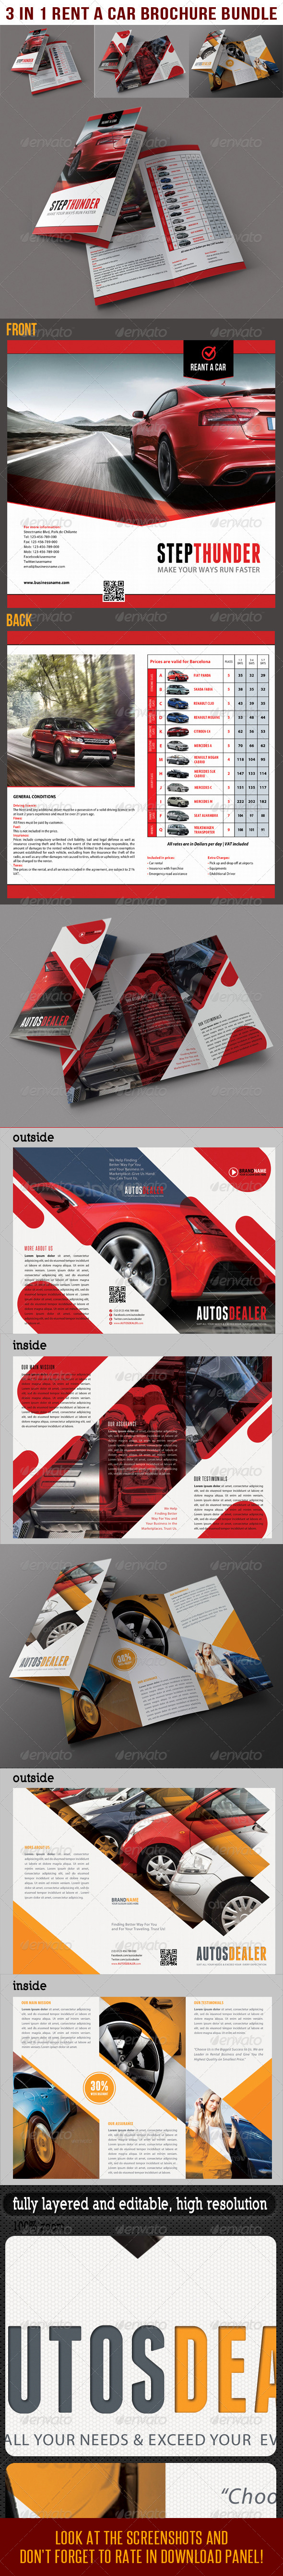 GraphicRiver 3 in 1 Rent A Car Brochure Bundle 03 7990321